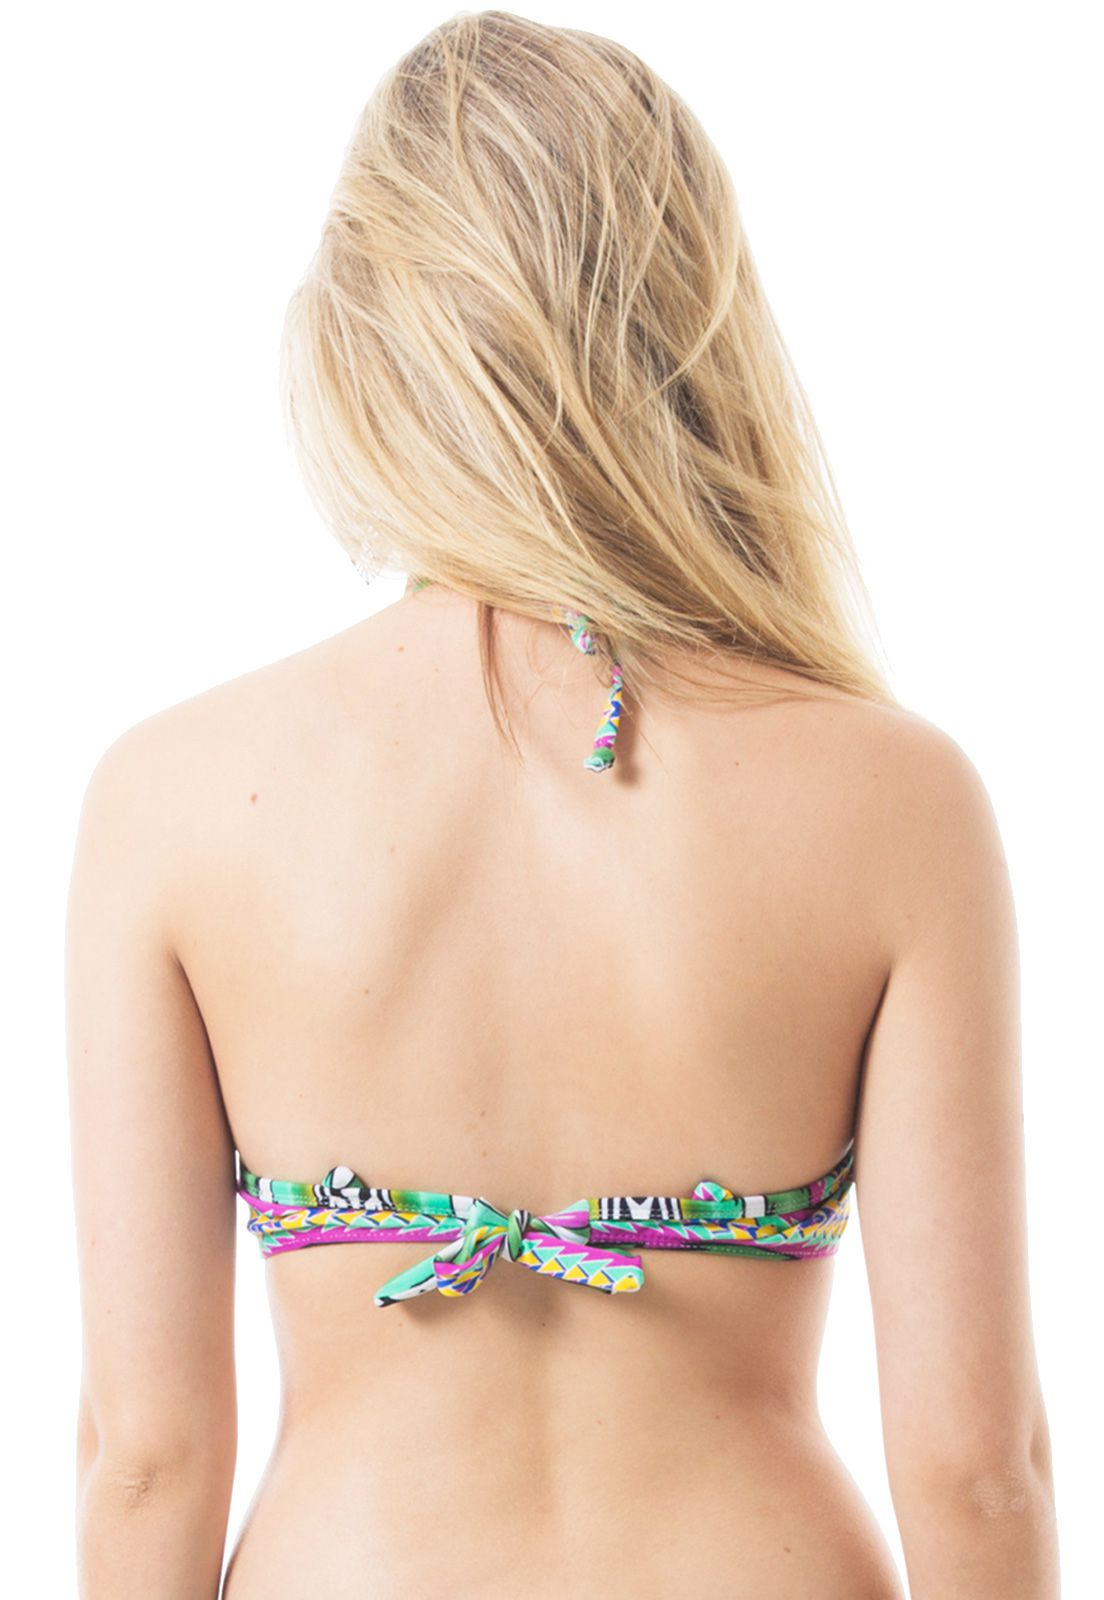 Biquíni Top Push-up Flavia Donadio Beachwear Laguna-2 Estampado Verde